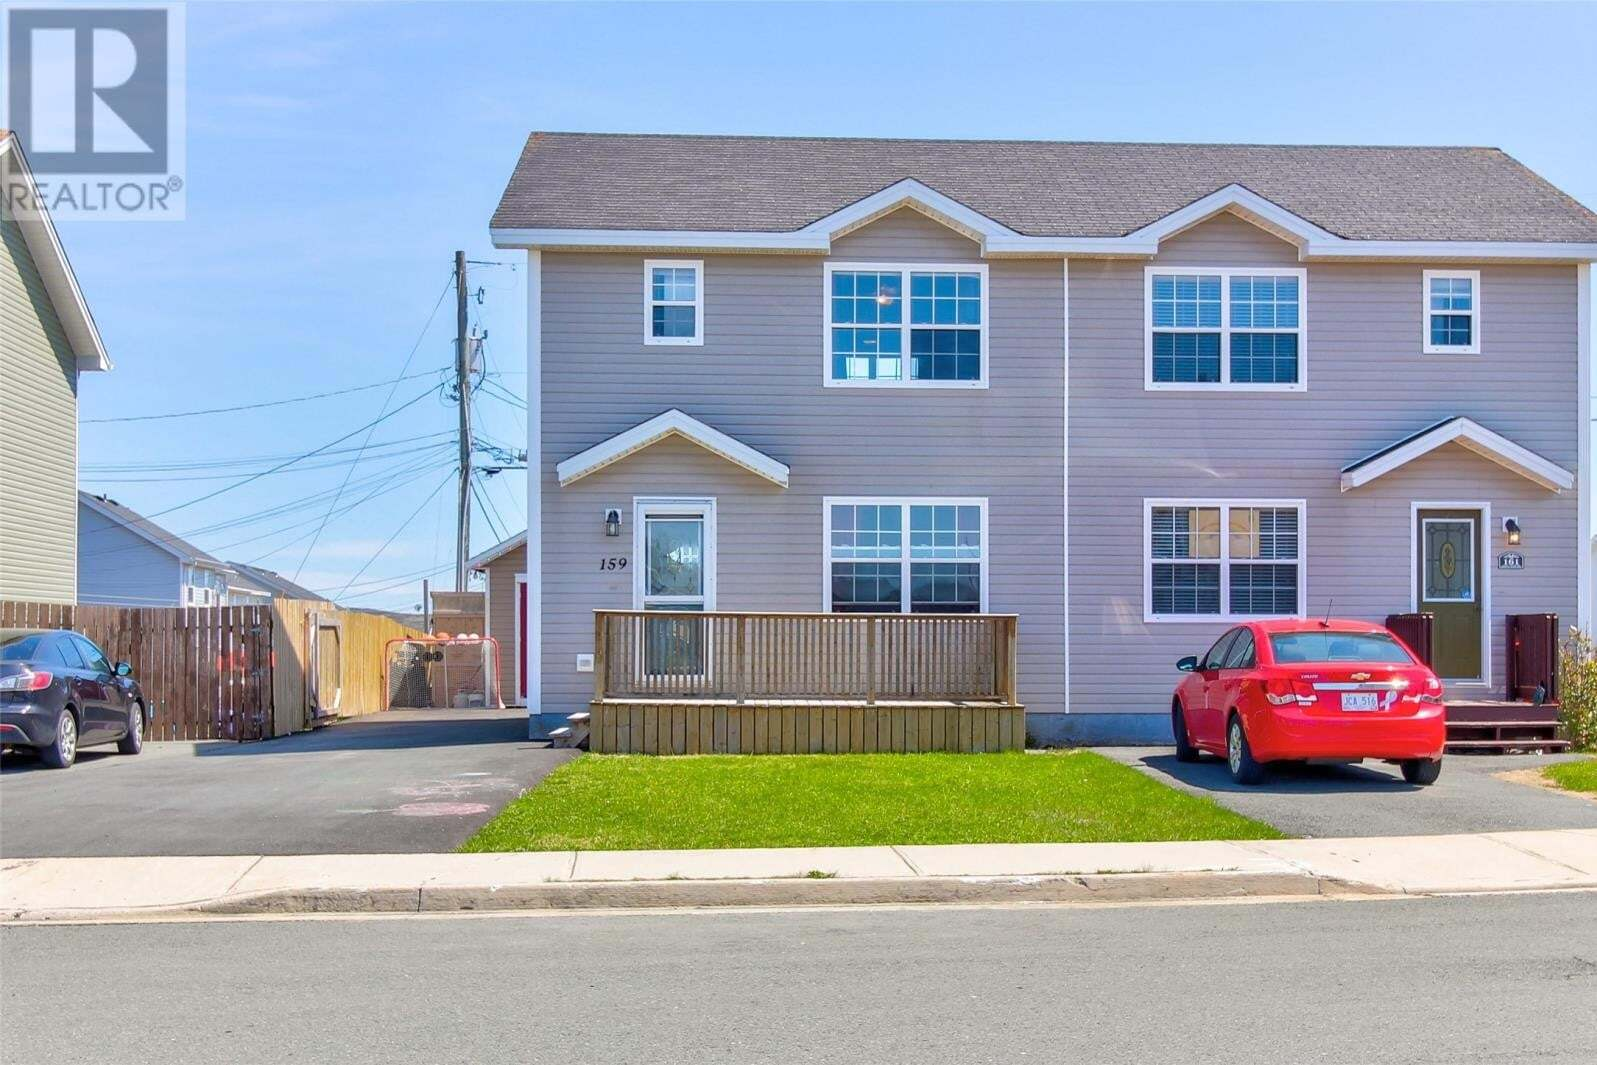 House for sale at 159 Green Acre Dr St. John's Newfoundland - MLS: 1214139